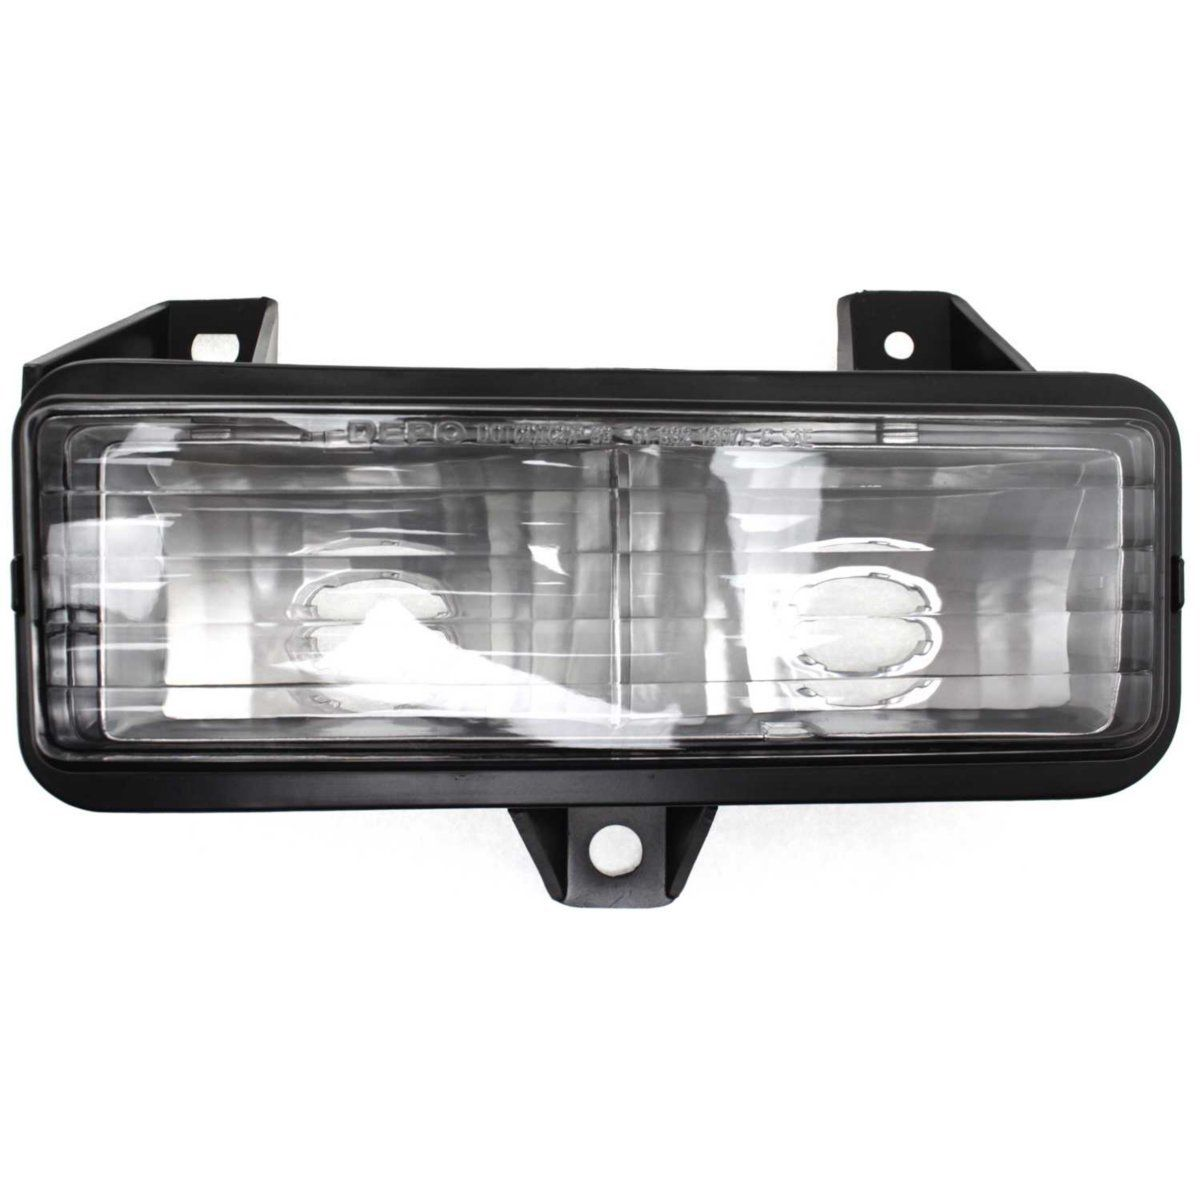 コーナーライト Parking Light For 1992-1995 Chevy G20 Lens/Housing Below Single Head Lamps Left 1992-1995 Chevy G20用の駐車ライトLeft / Leftヘッドランプ